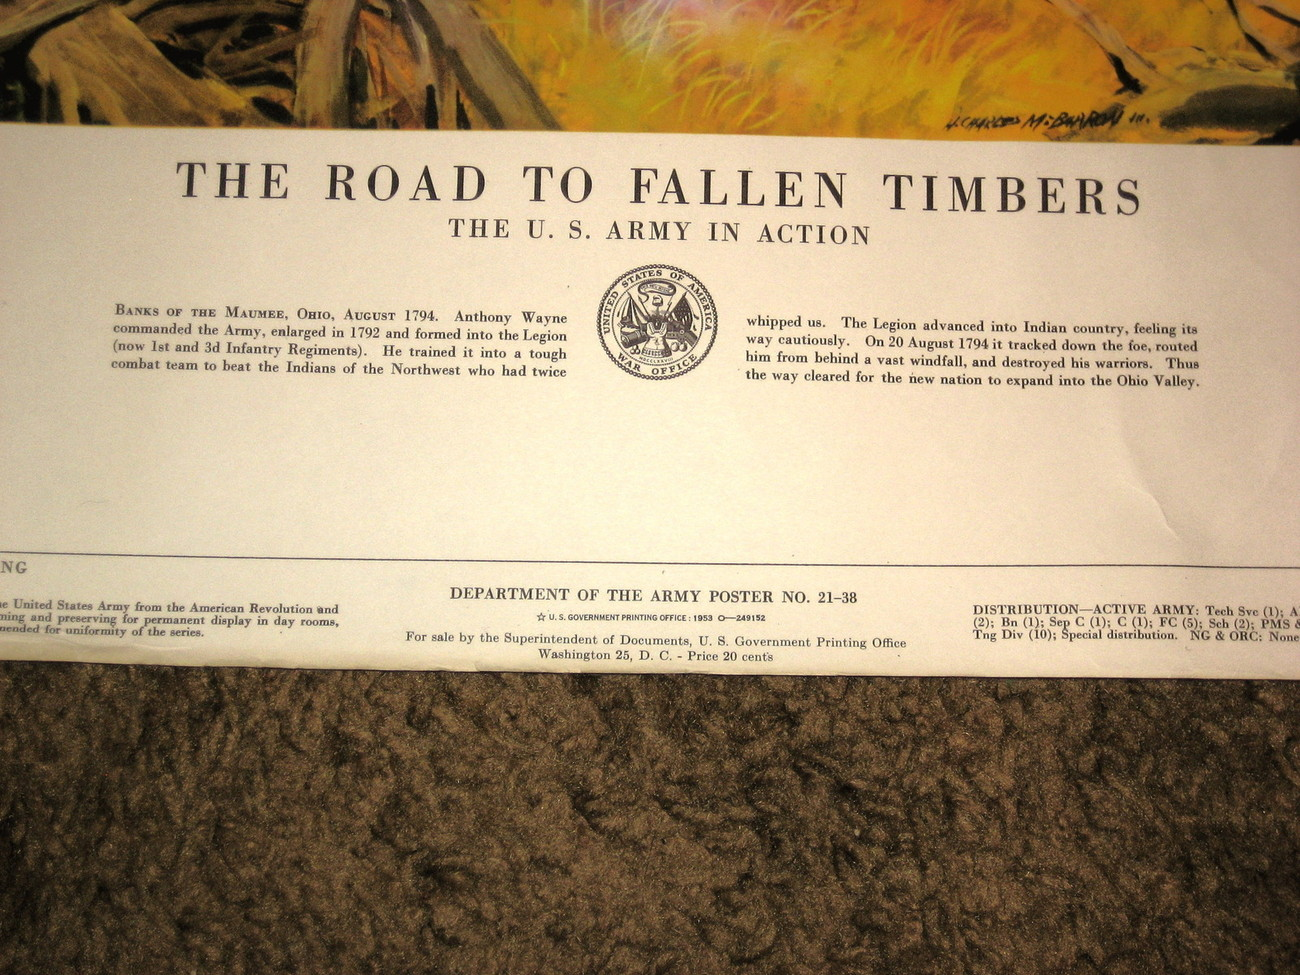 1953 U.S.Army Poster 21-38--Road To Fallen Timbers